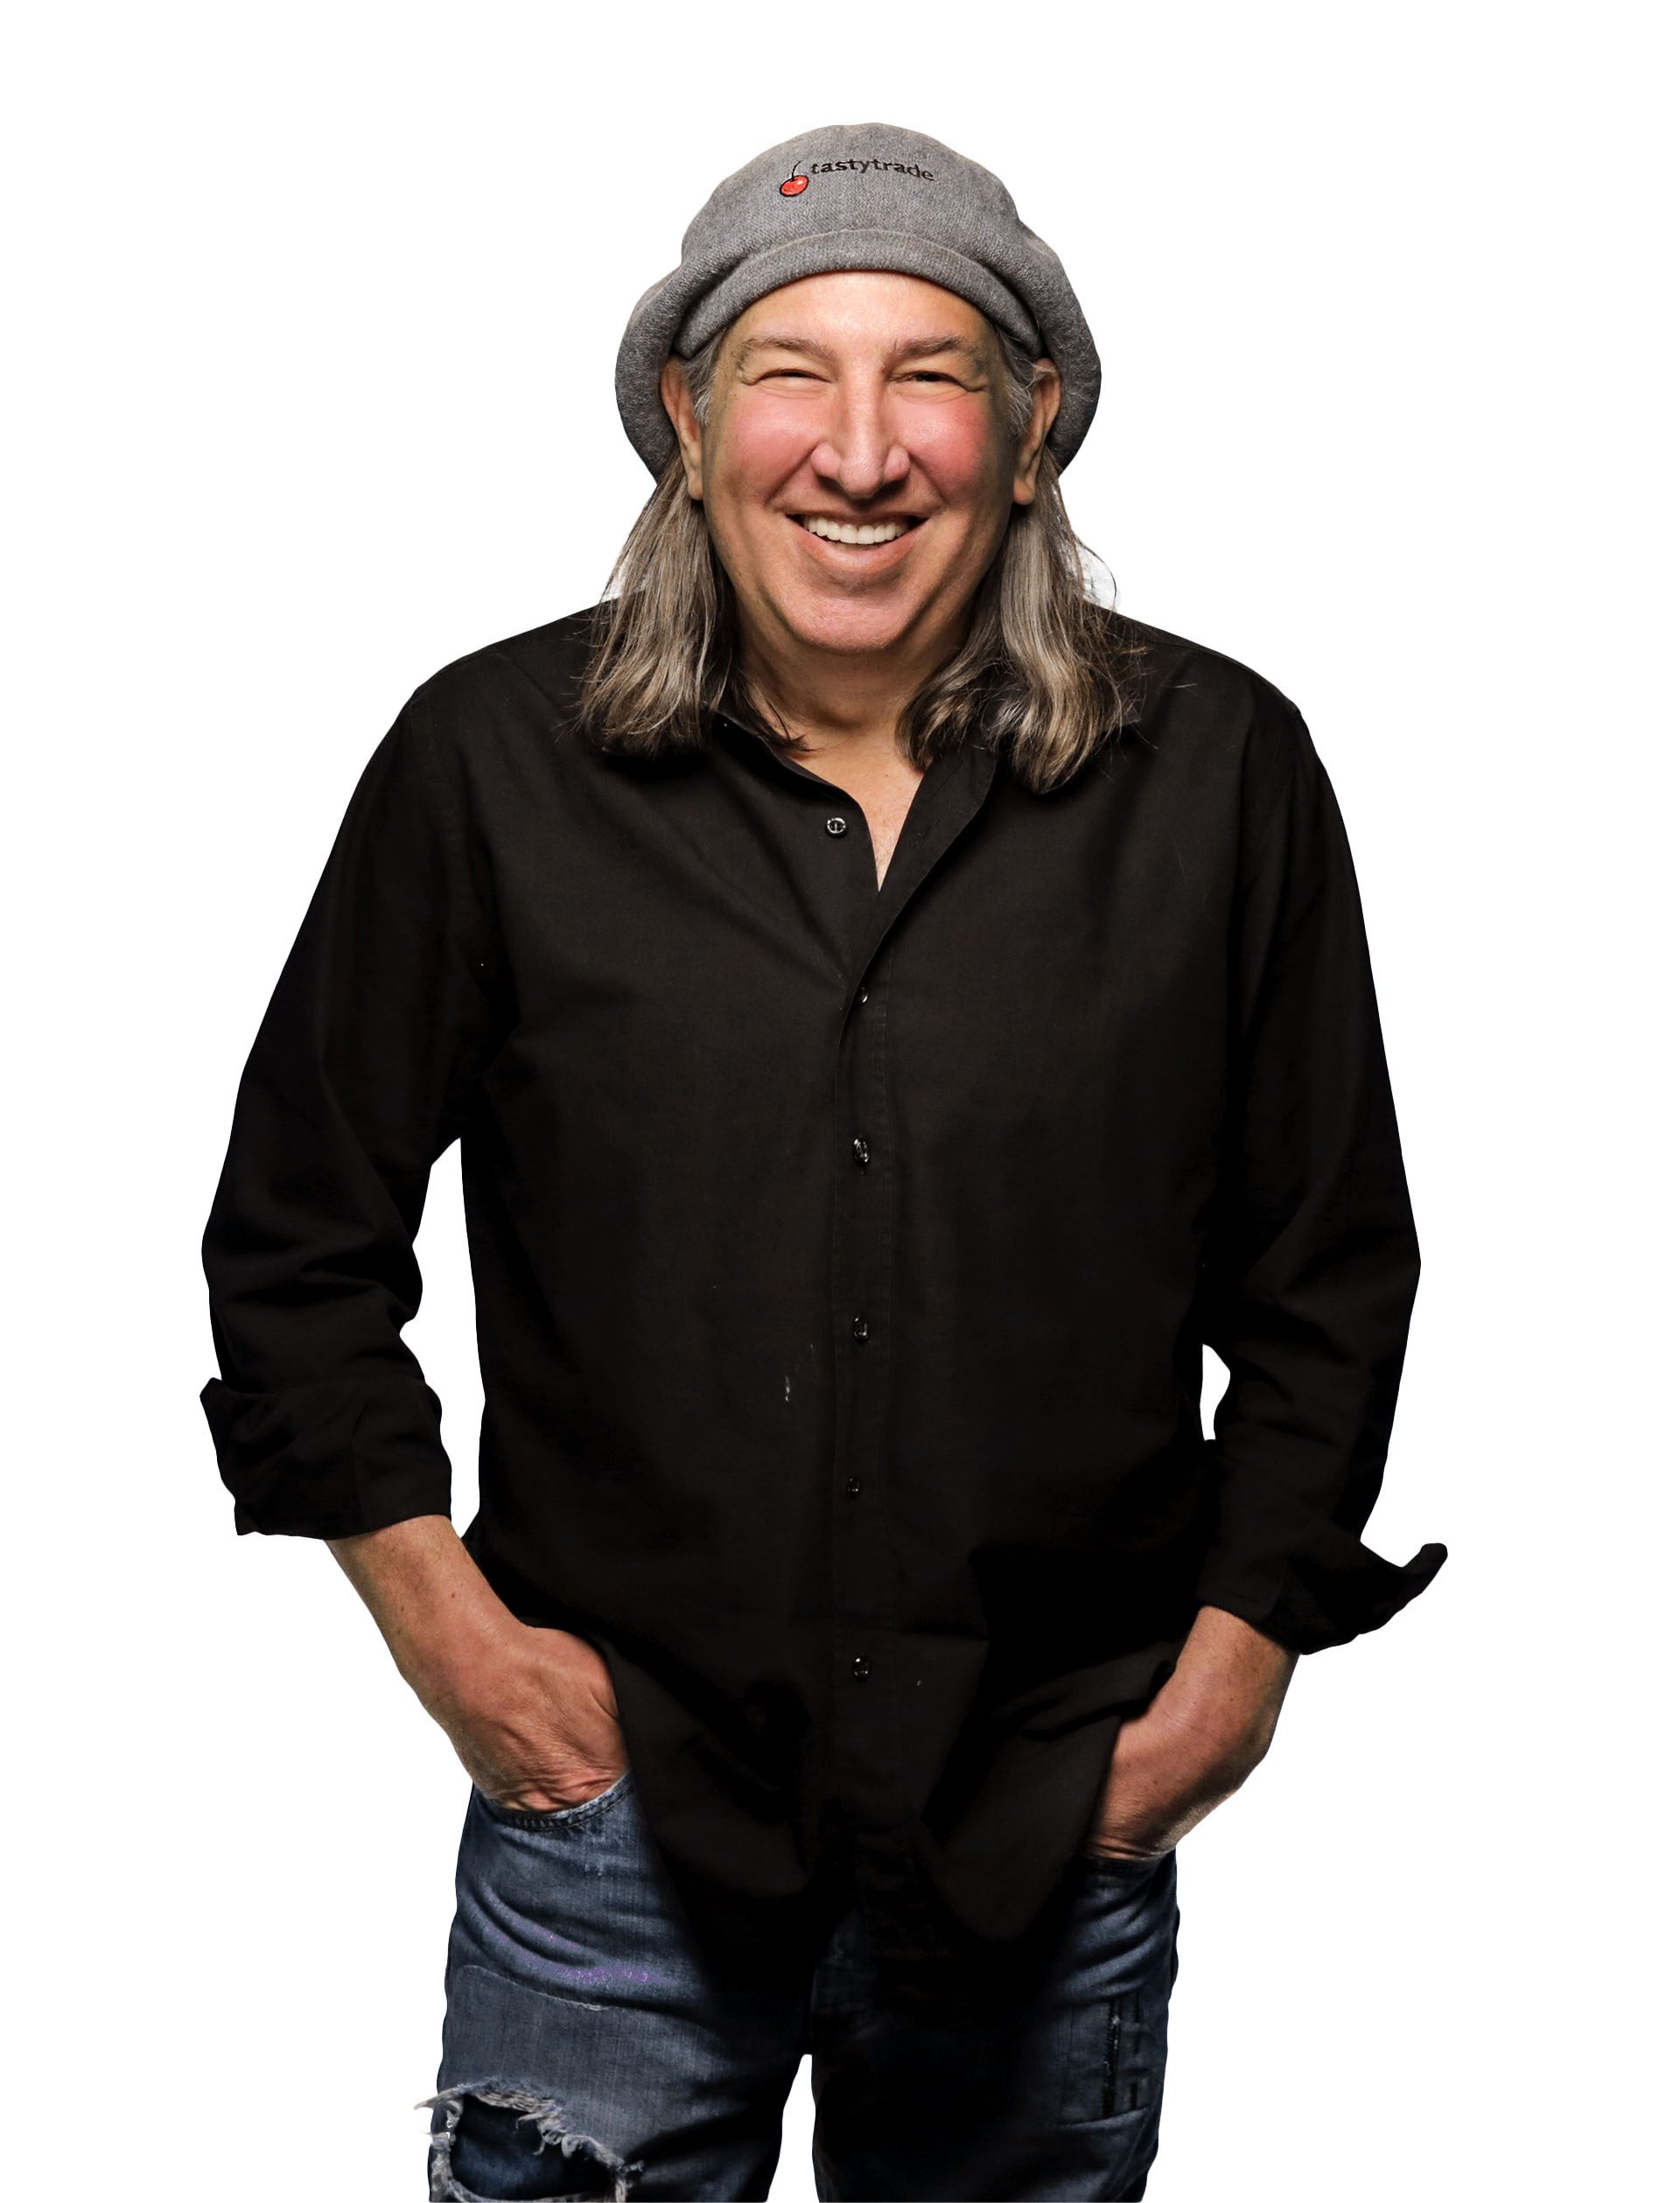 Tastytrade options